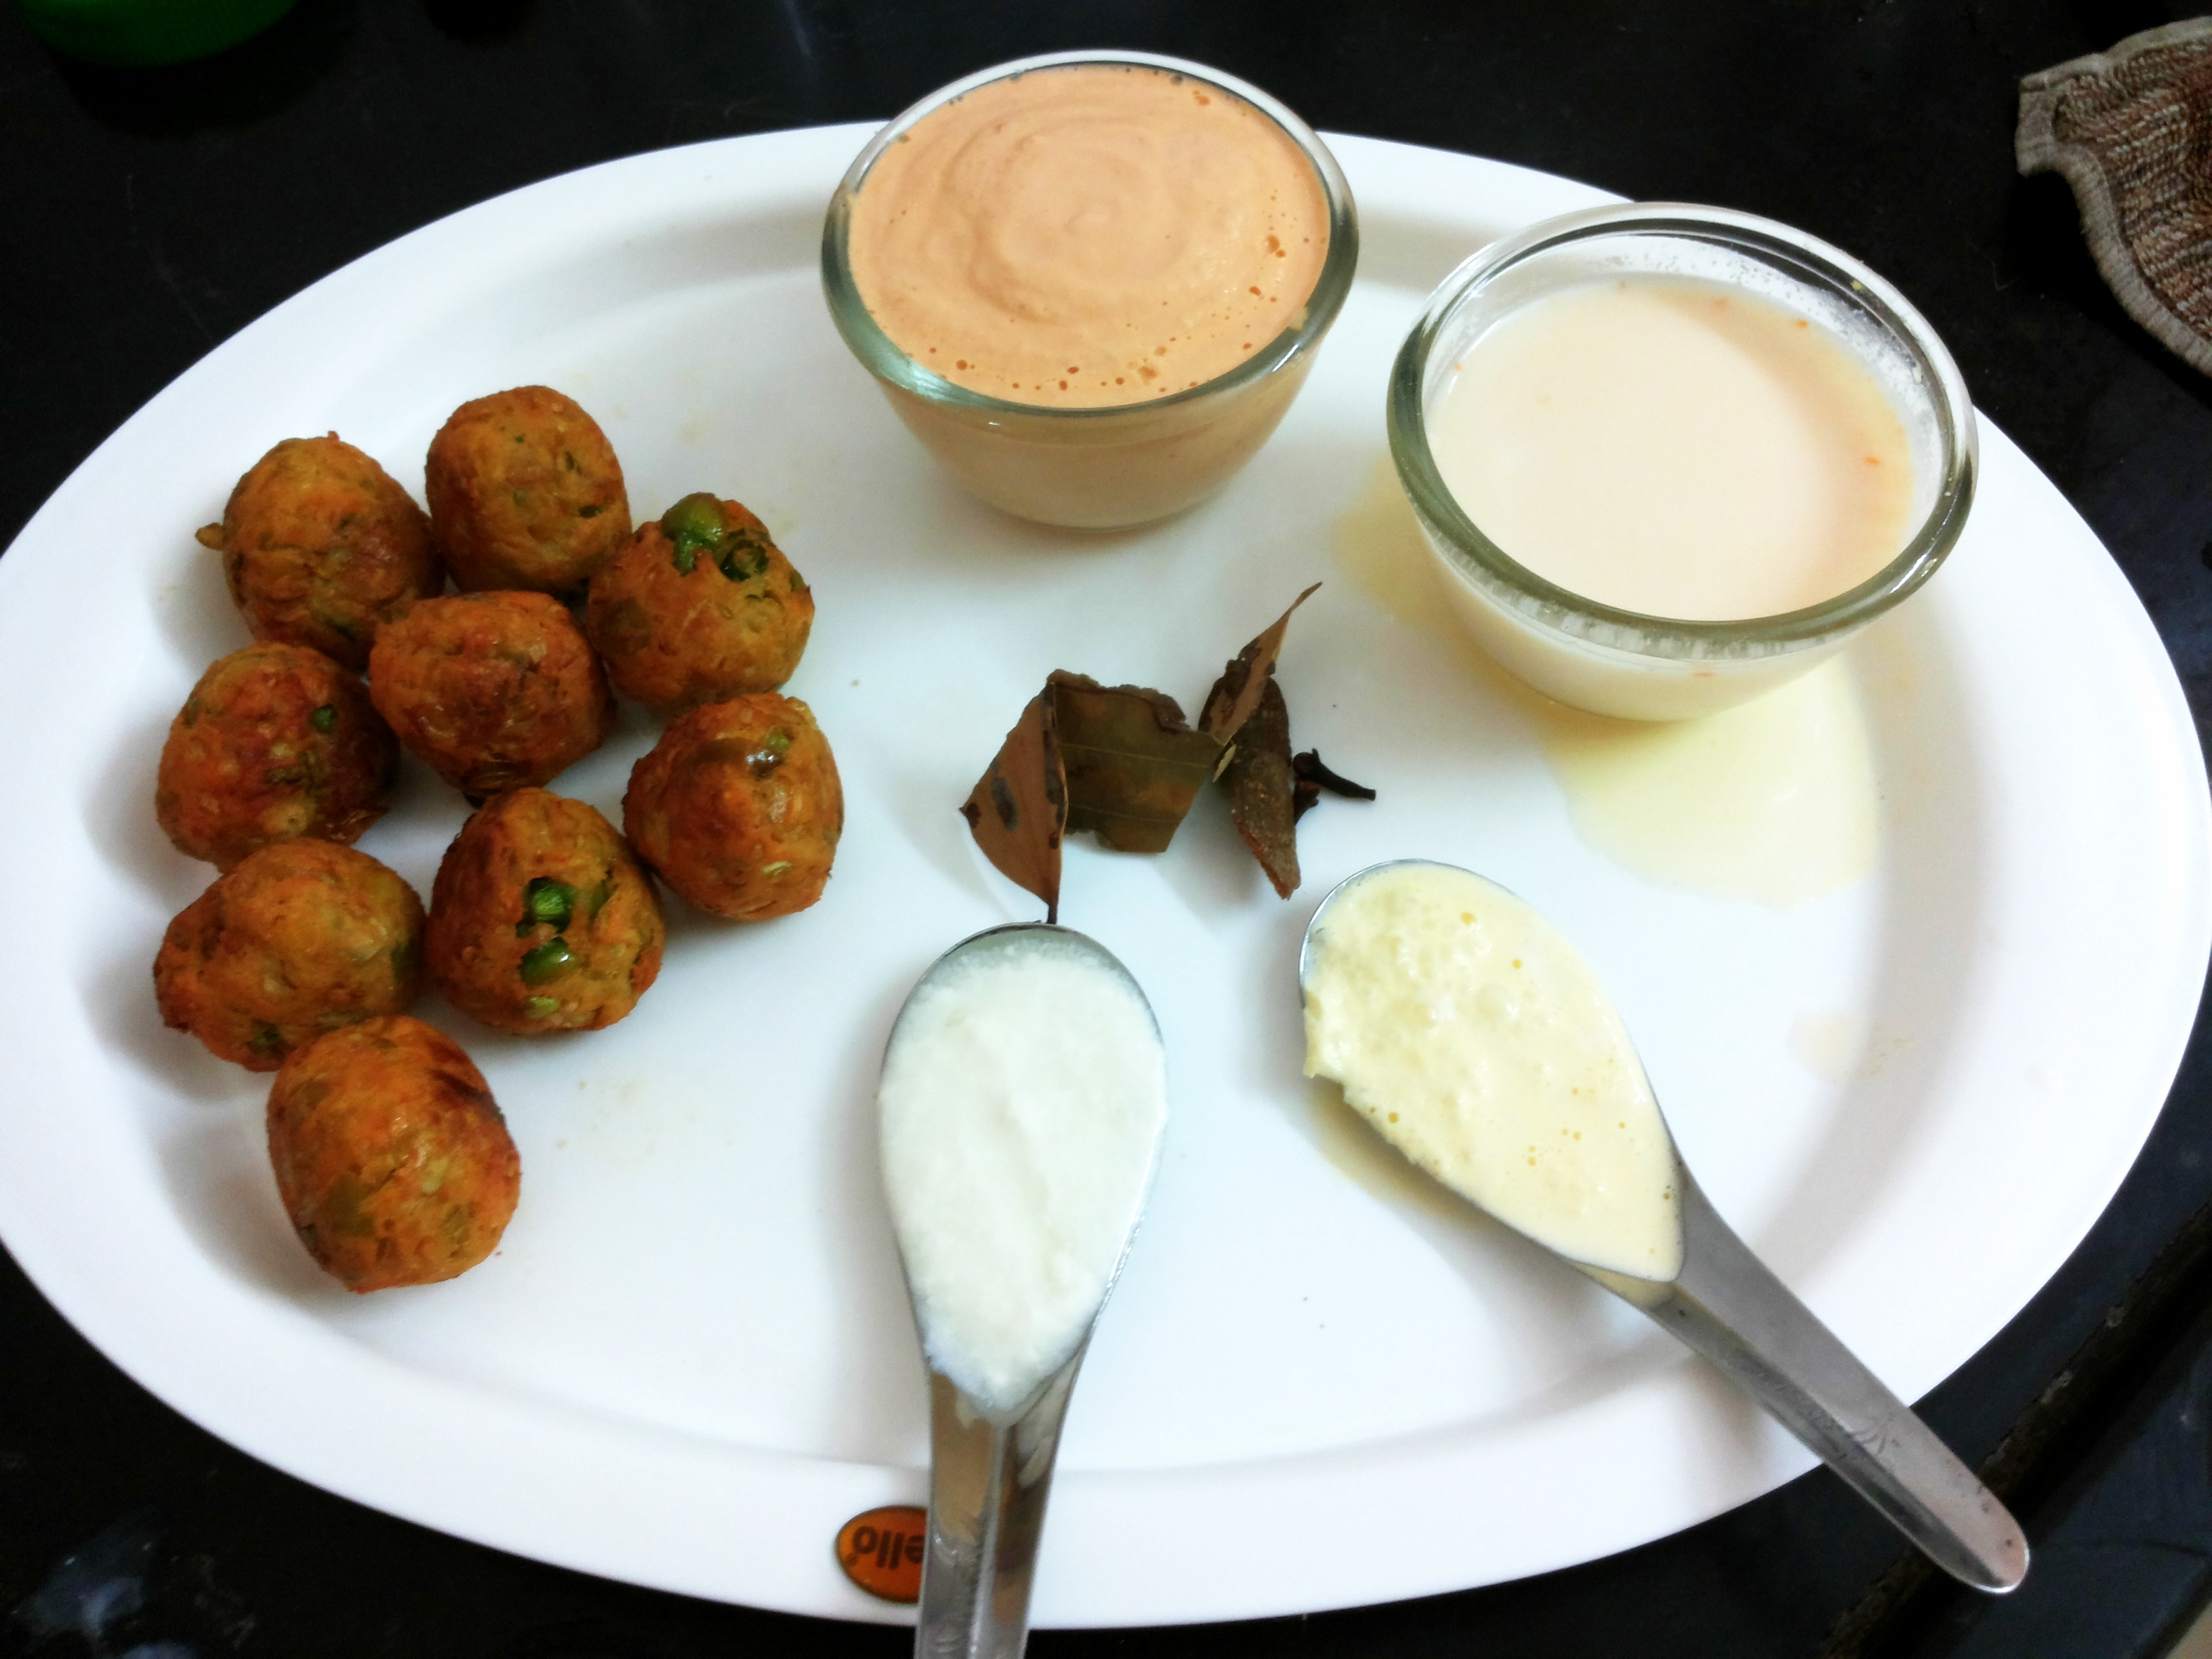 fried kofta with grind paste